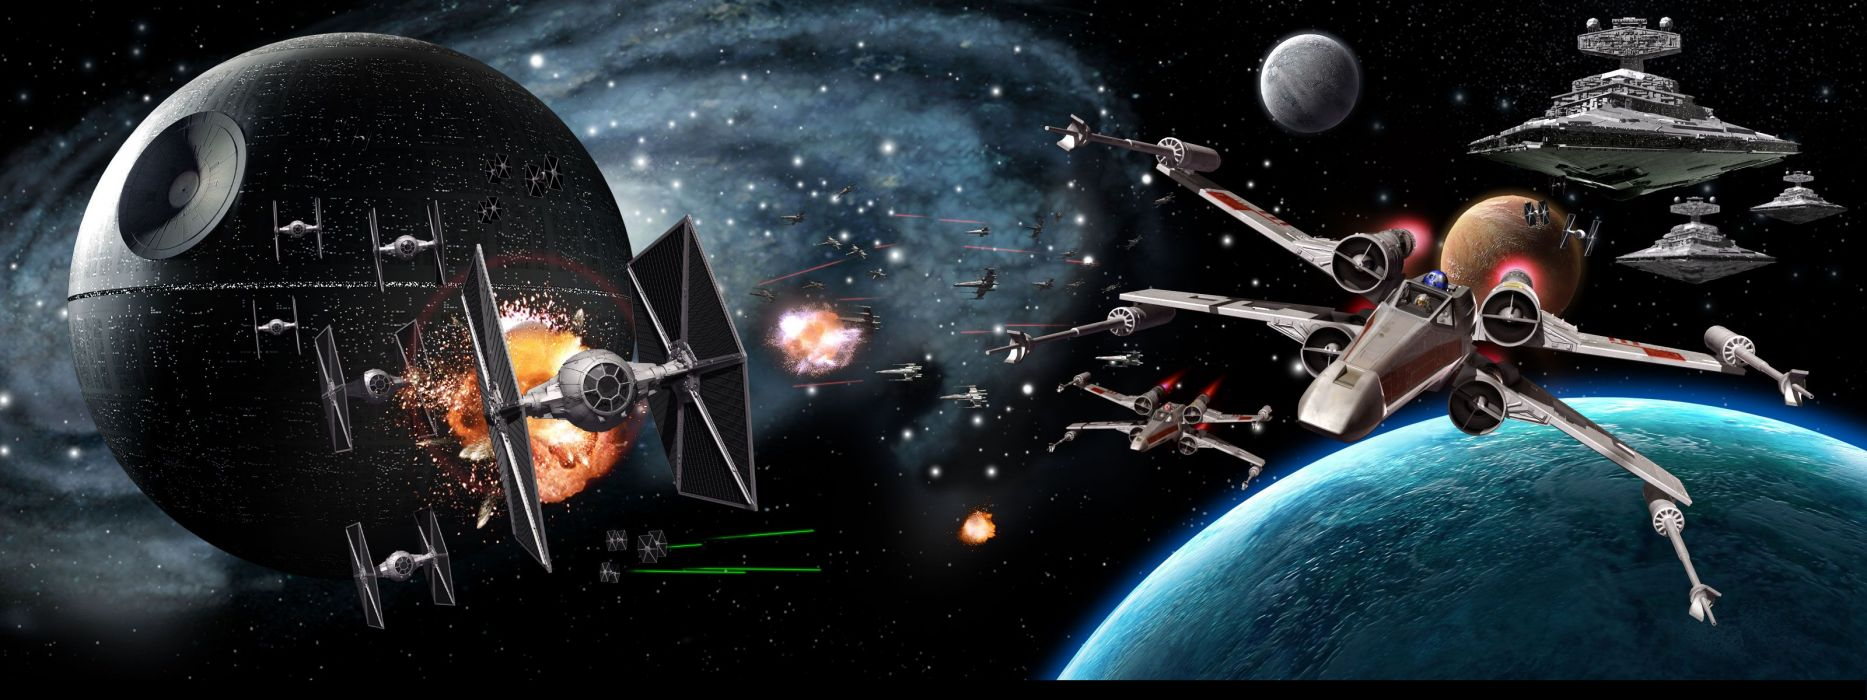 star wars Multi Monitor sci fi science battle death star outer space vehicles spaceships spacecrafts wallpaper